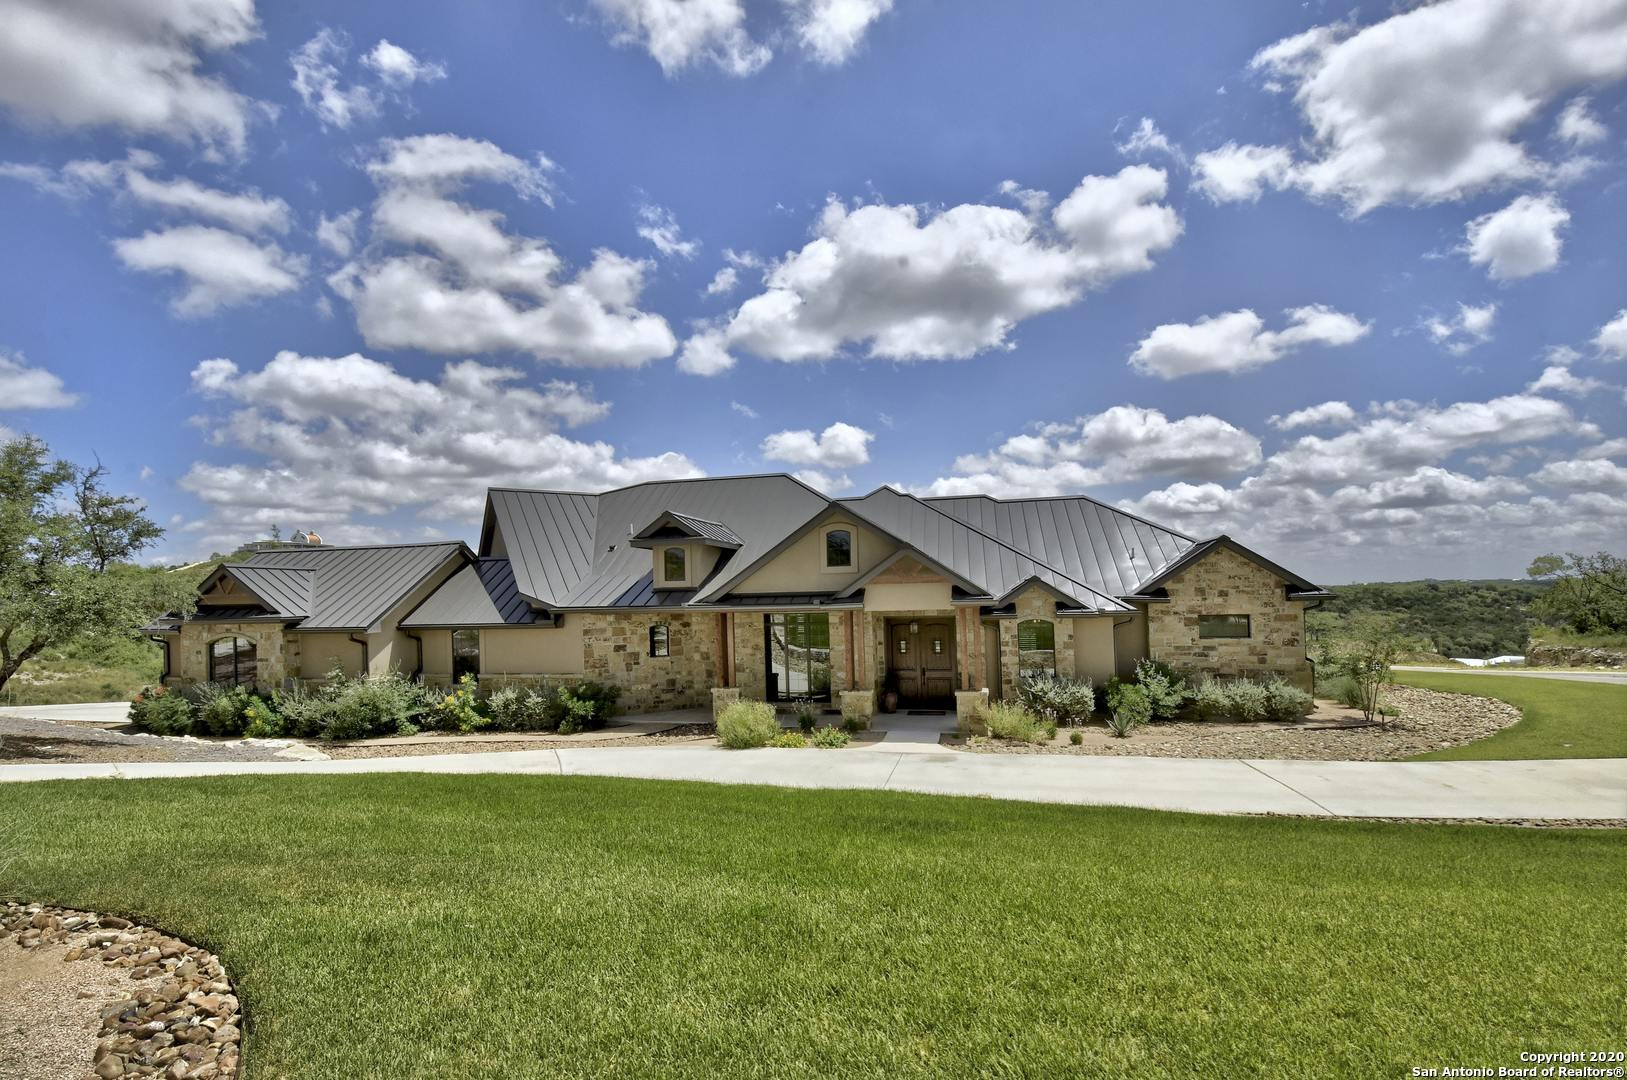 Views! Views! Views! Gorgeous Hill Country, lodge style, retreat on a corner lot offers much serenity just minutes from city amenities. Enjoy unobstructed sunrise views for miles from the spacious covered patio/deck. True one-story living at its finest in a home loaded w/custom stone & warm wood accents. The open floor plan includes both formal dining & eat-in kitchen, executive study, butler's pantry & bonus room for entertaining. The furniture is negotiable and a second lot is available for added privacy! Check out the virtual tour:  https://youtu.be/a_UtgscfpiQ